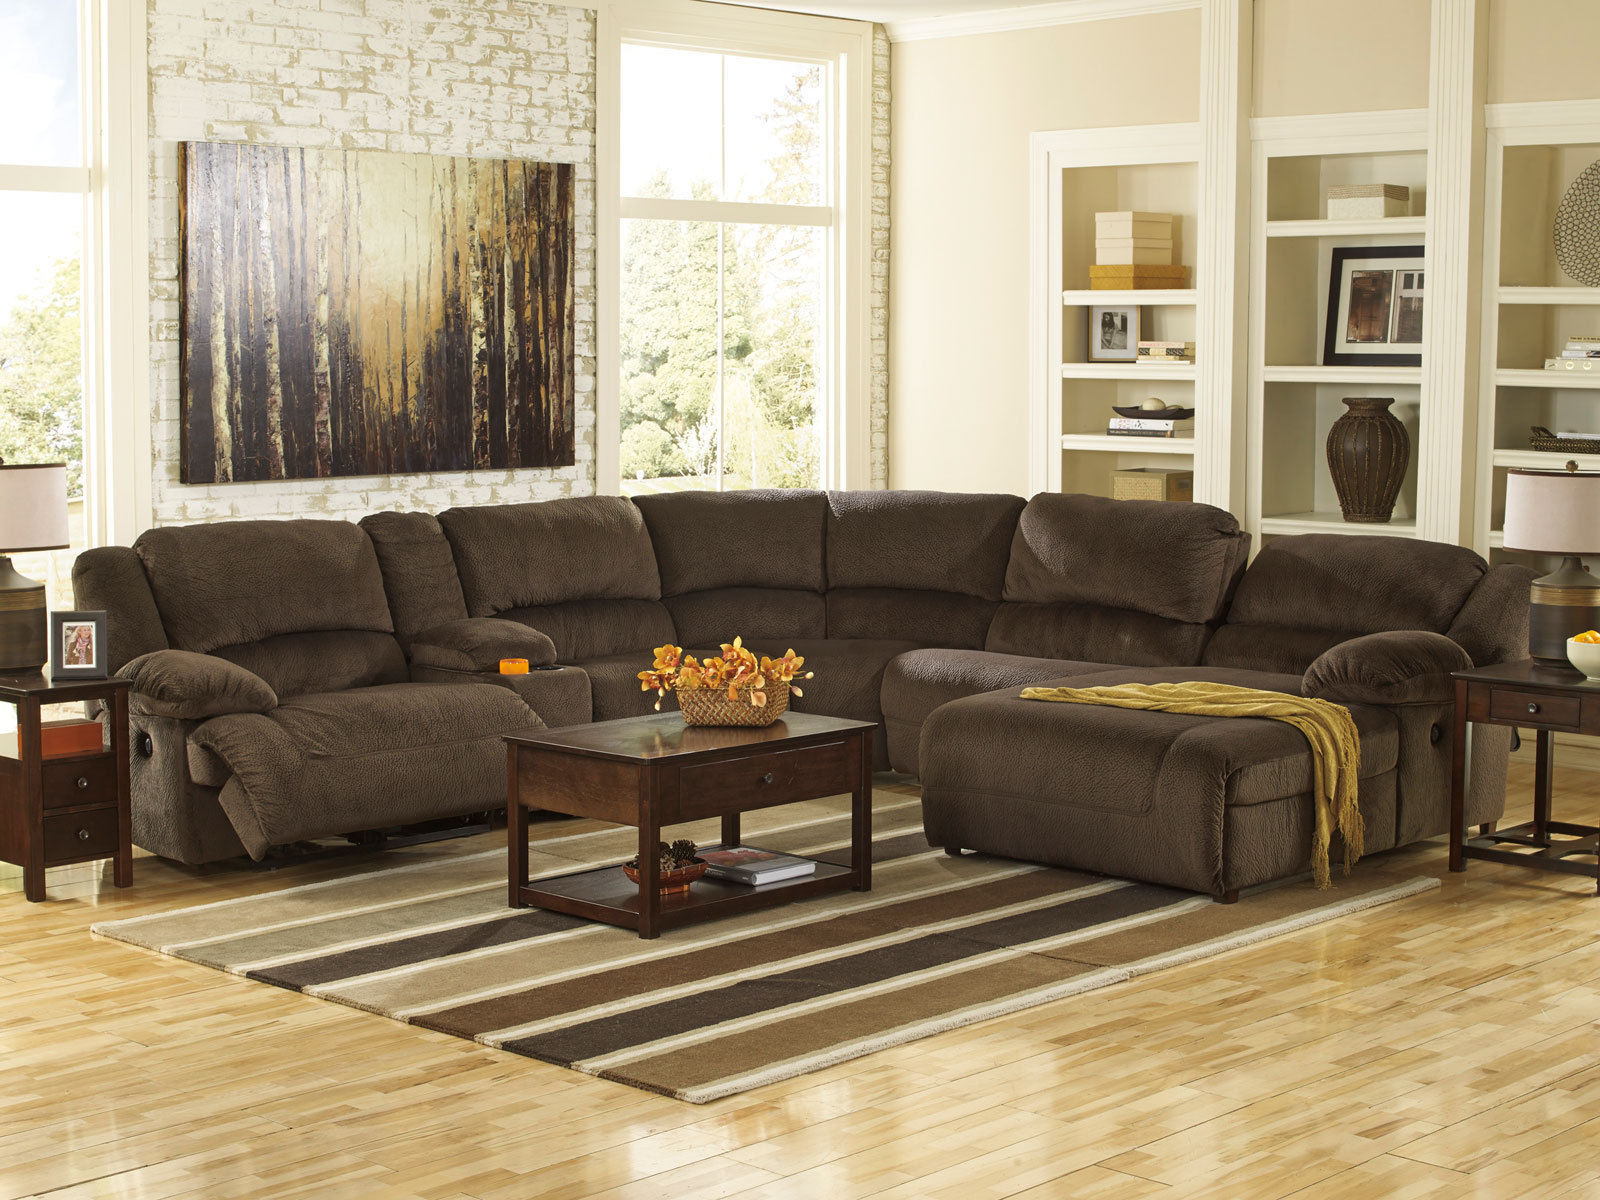 AVERY-6pcs BROWN MICROFIBER RECLINER SOFA COUCH CHAISE ...